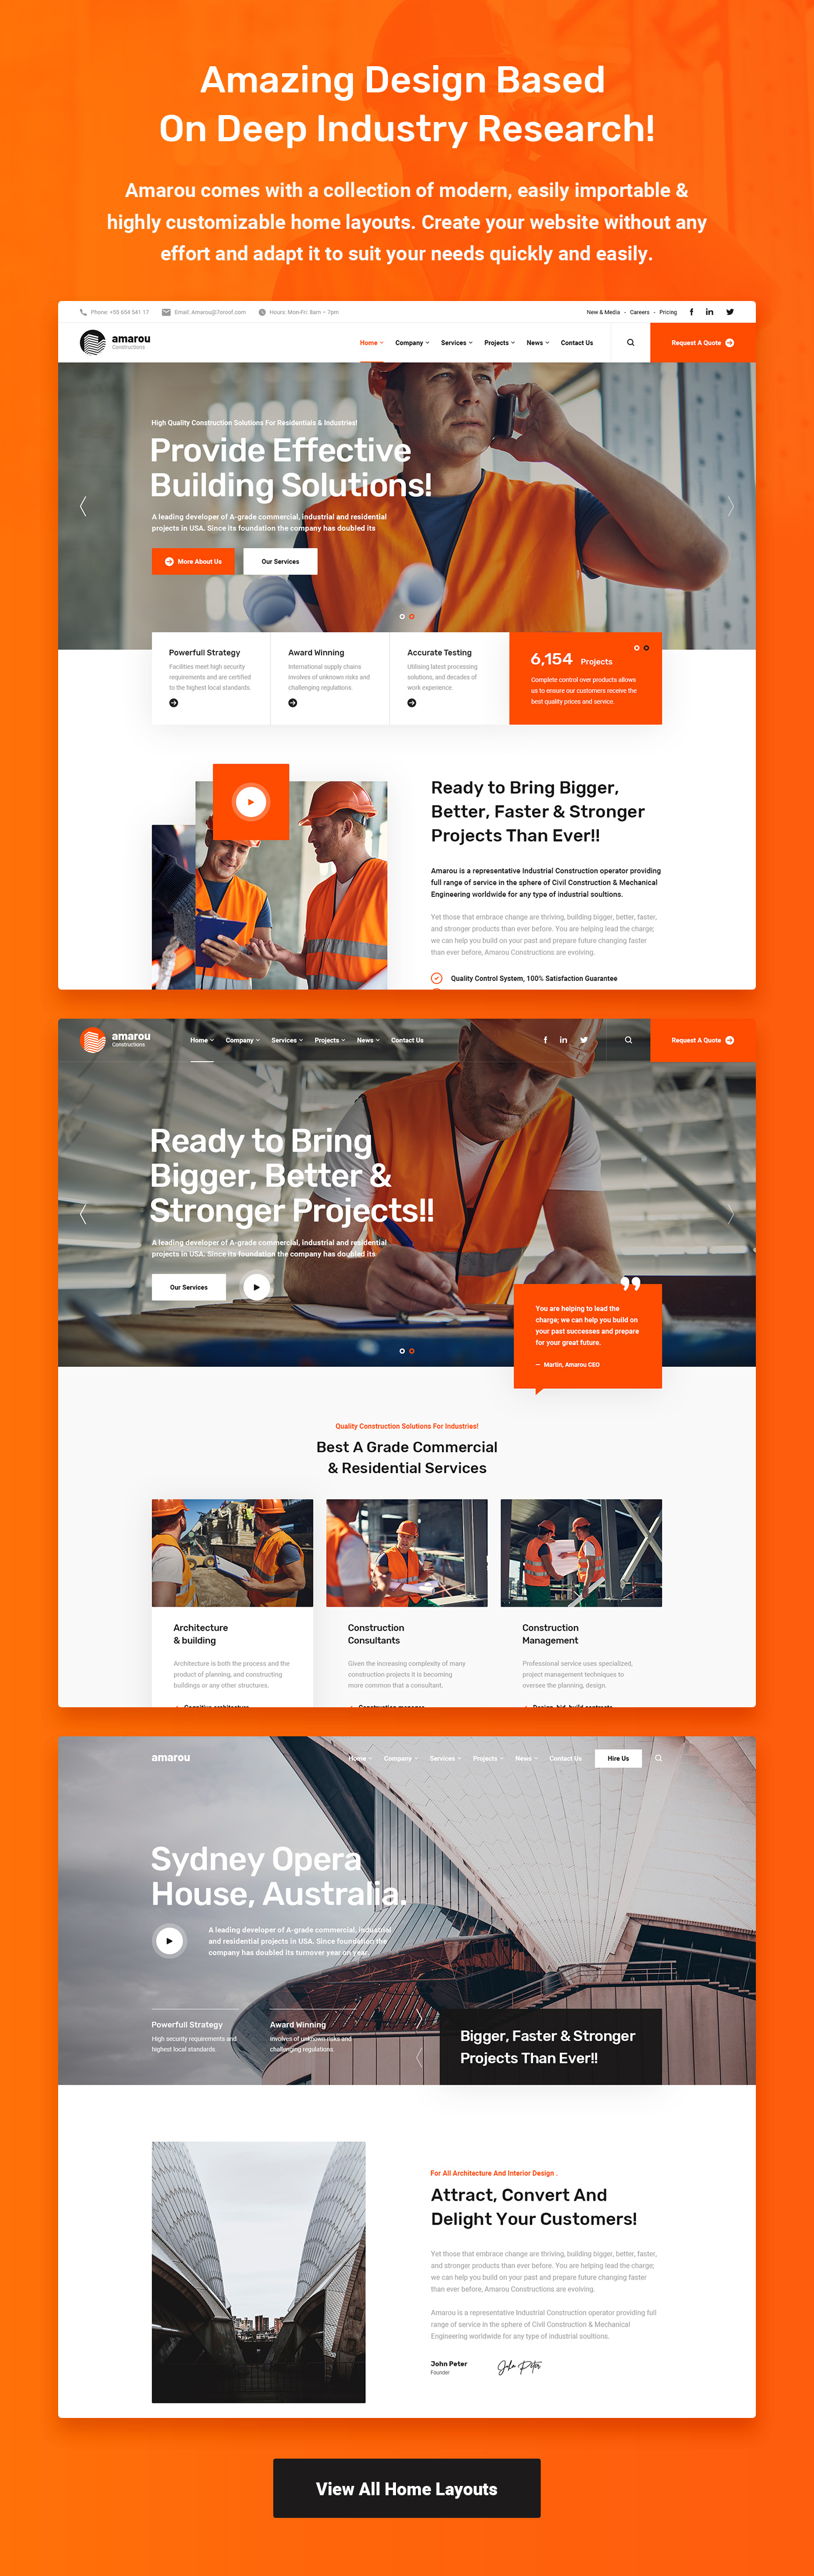 Amarou - Construction and Building HTML5 Template - 6